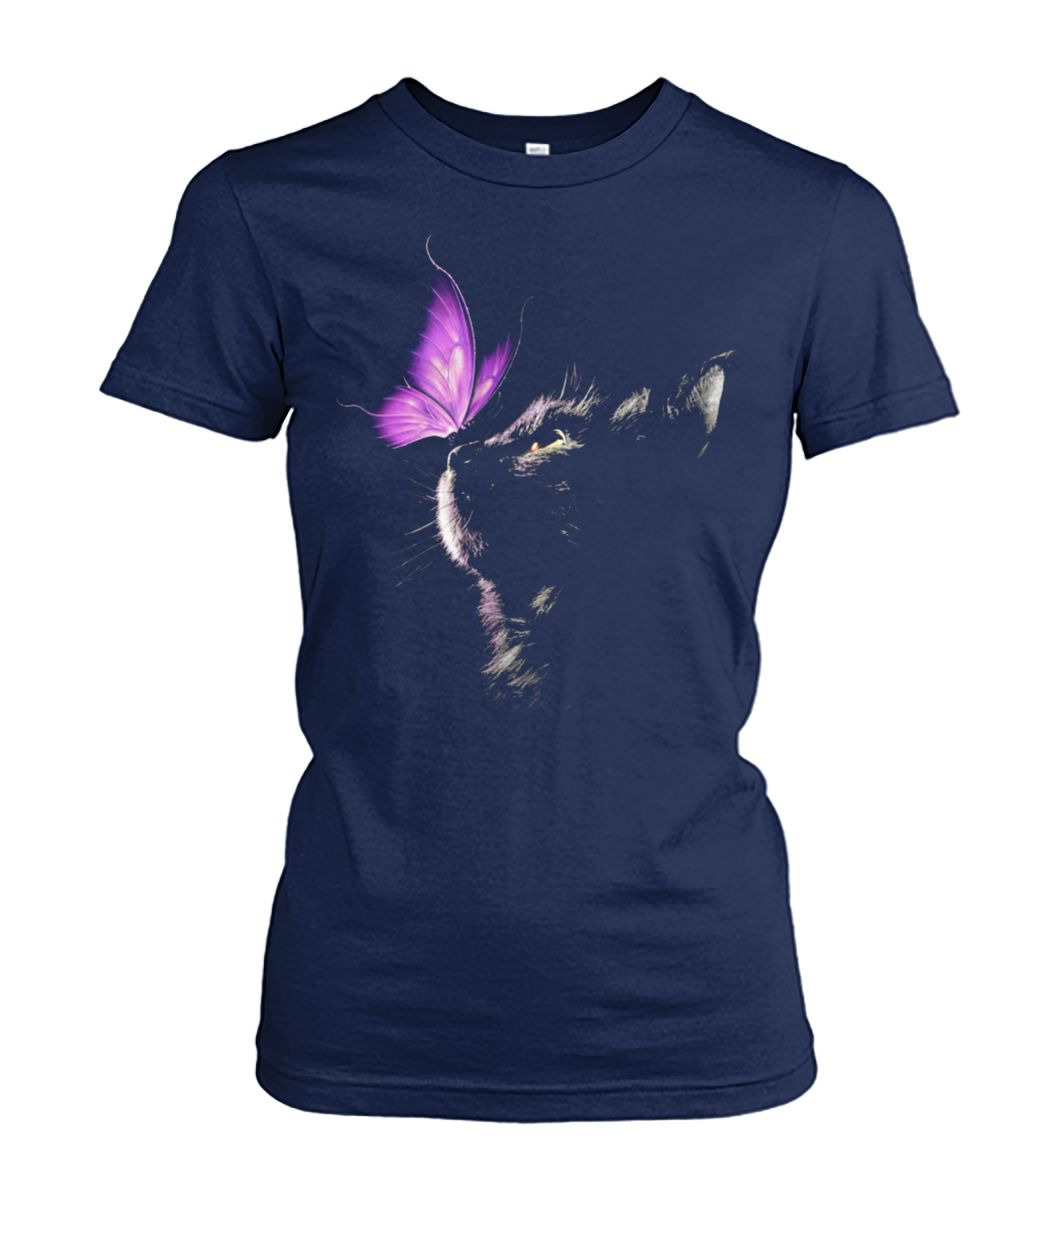 Cat and butterfly women's crew tee